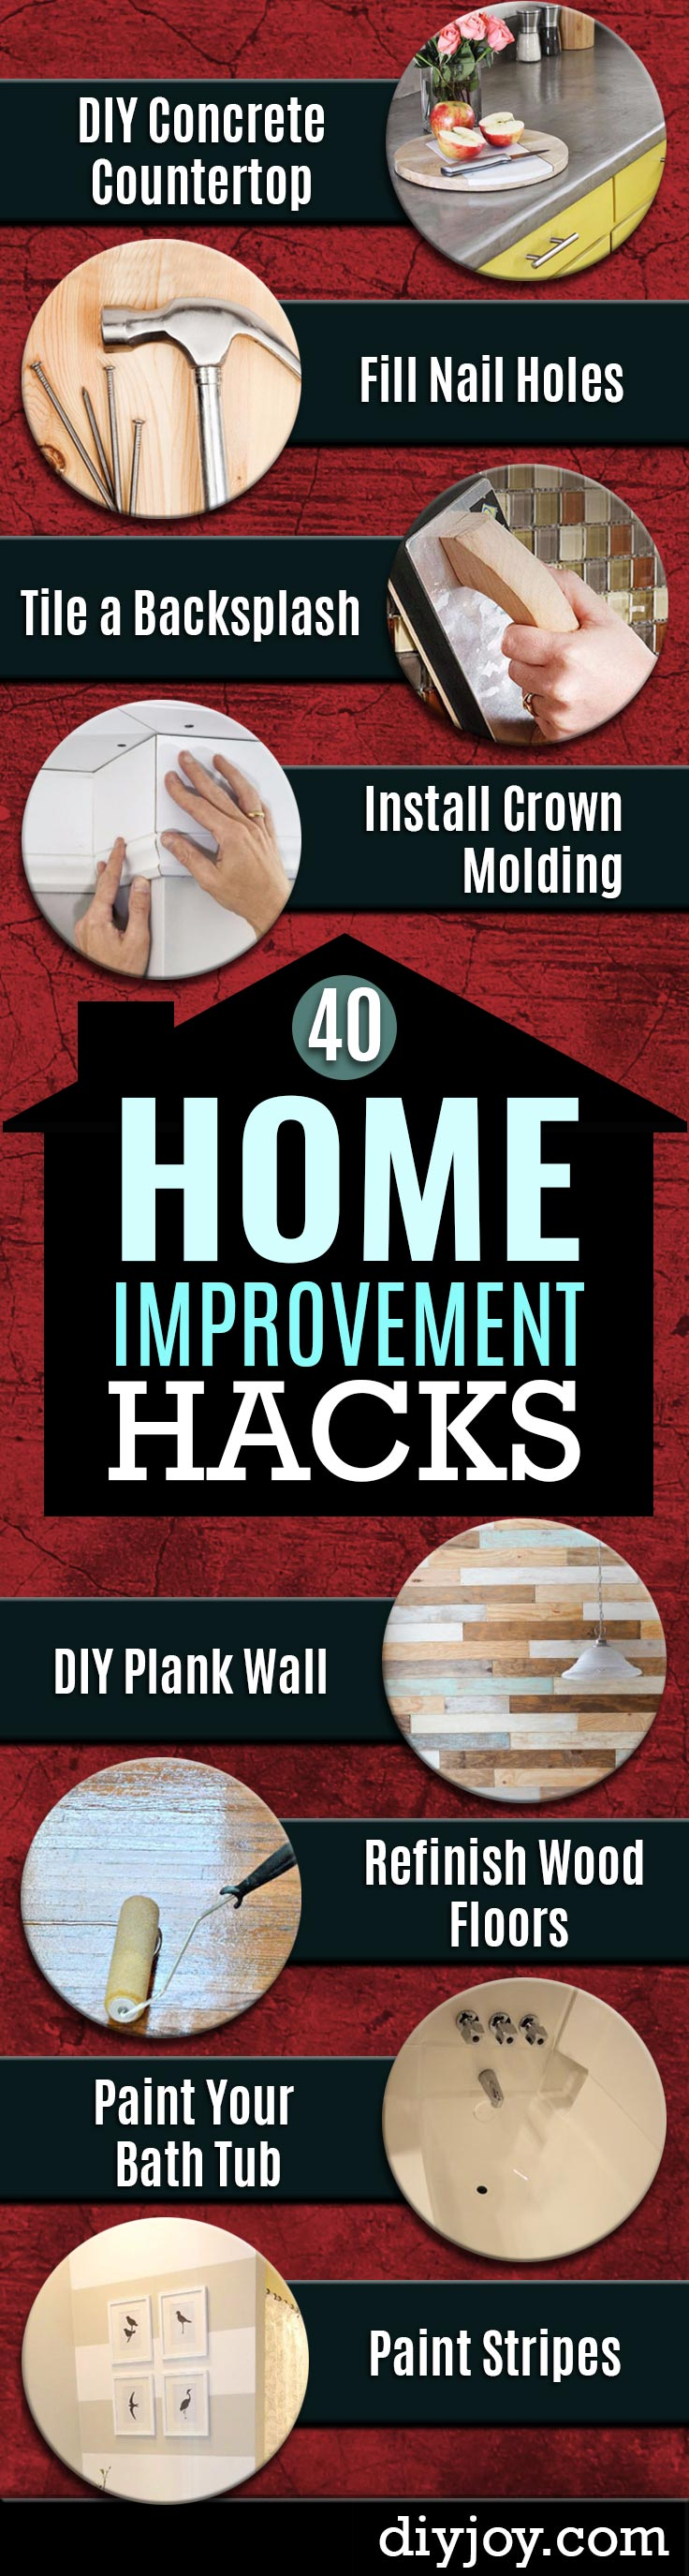 Home Improvement Hacks. Remodeling Ideas and DIY Home Improvement Made Easy With the Clever, Easy Renovation Ideas. Kitchen, Bathroom, Garage. Walls, Floors, Baseboards,Tile, Ceilings, Wood and Trim.